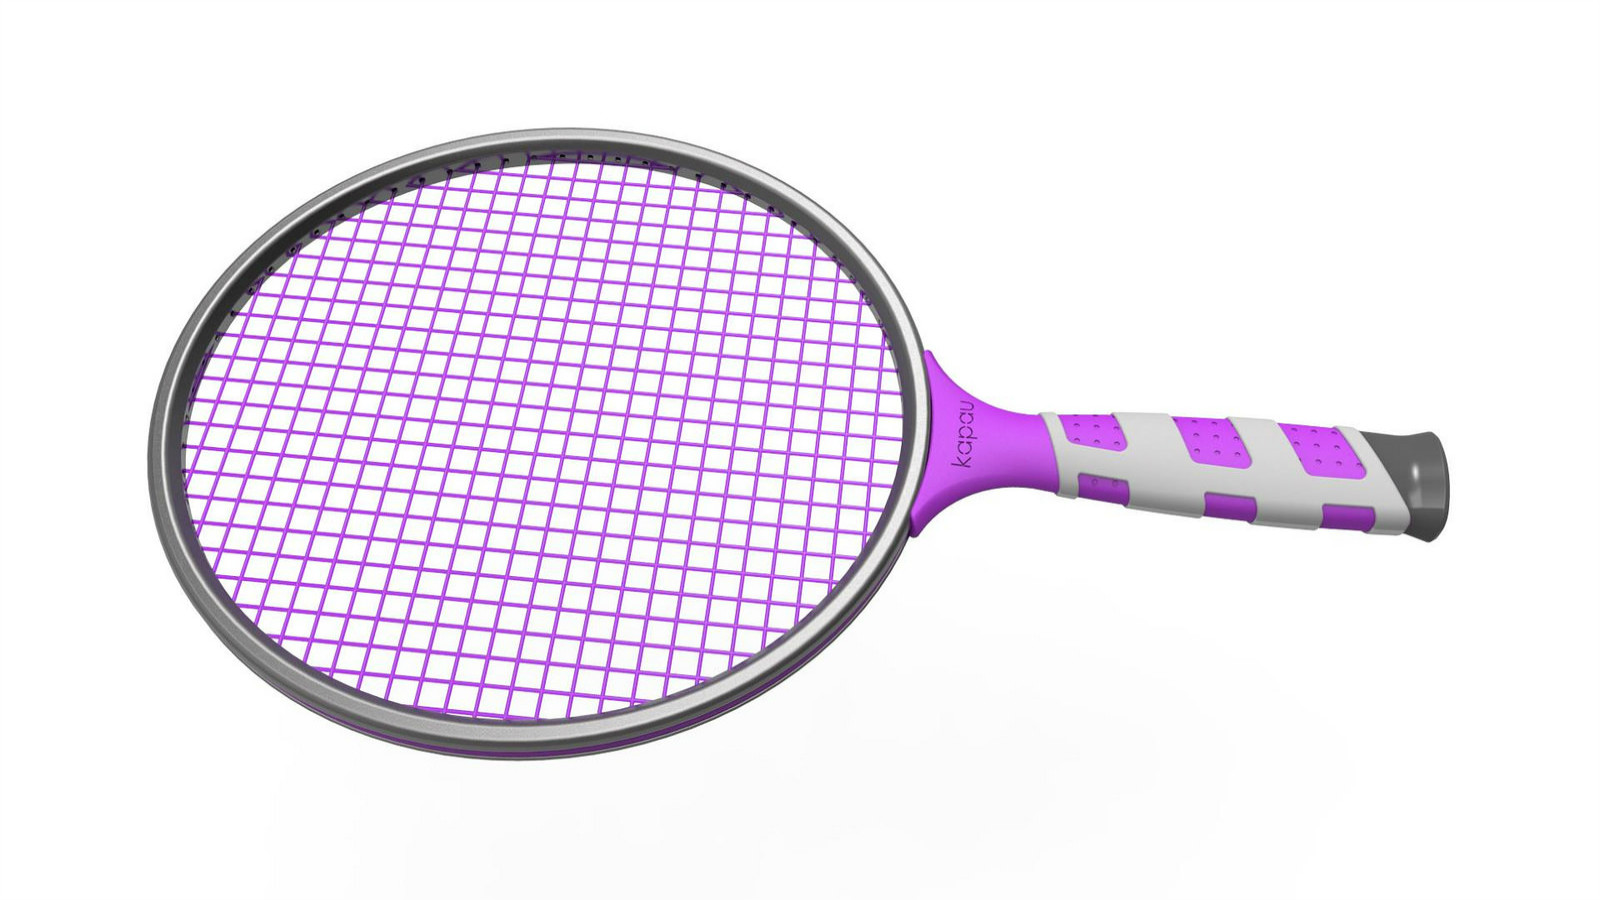 The carbon racket is smaller than a tennis racket and a bit bigger than the standard wooden matkot paddle. Photo: courtesy